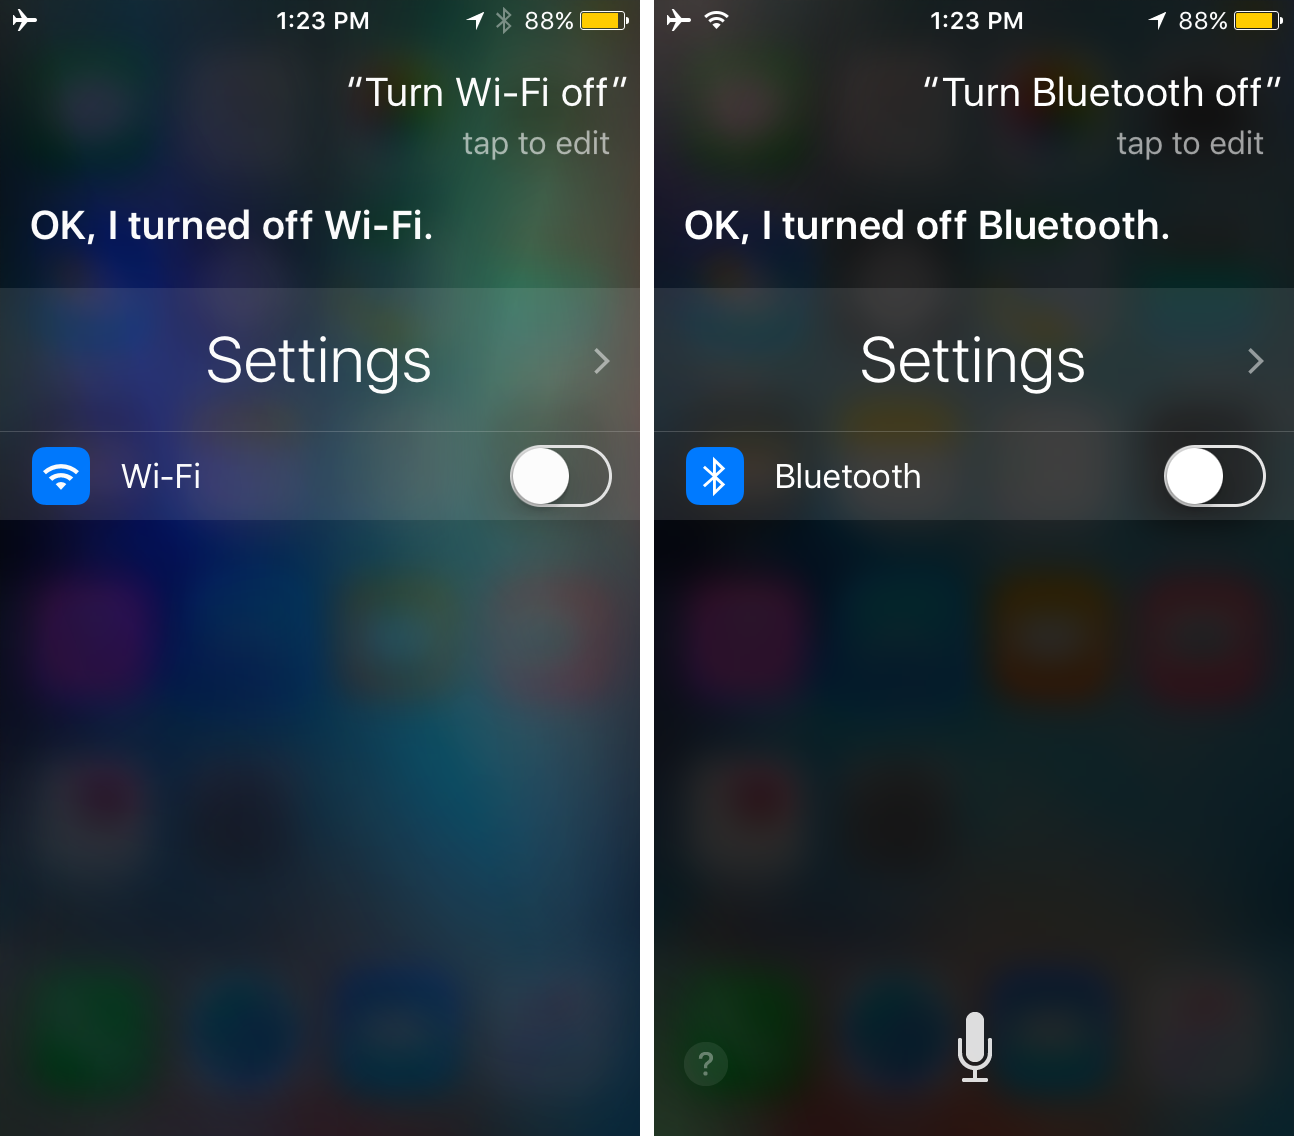 Use Siri to toggle off wi-fi or Bluetooth